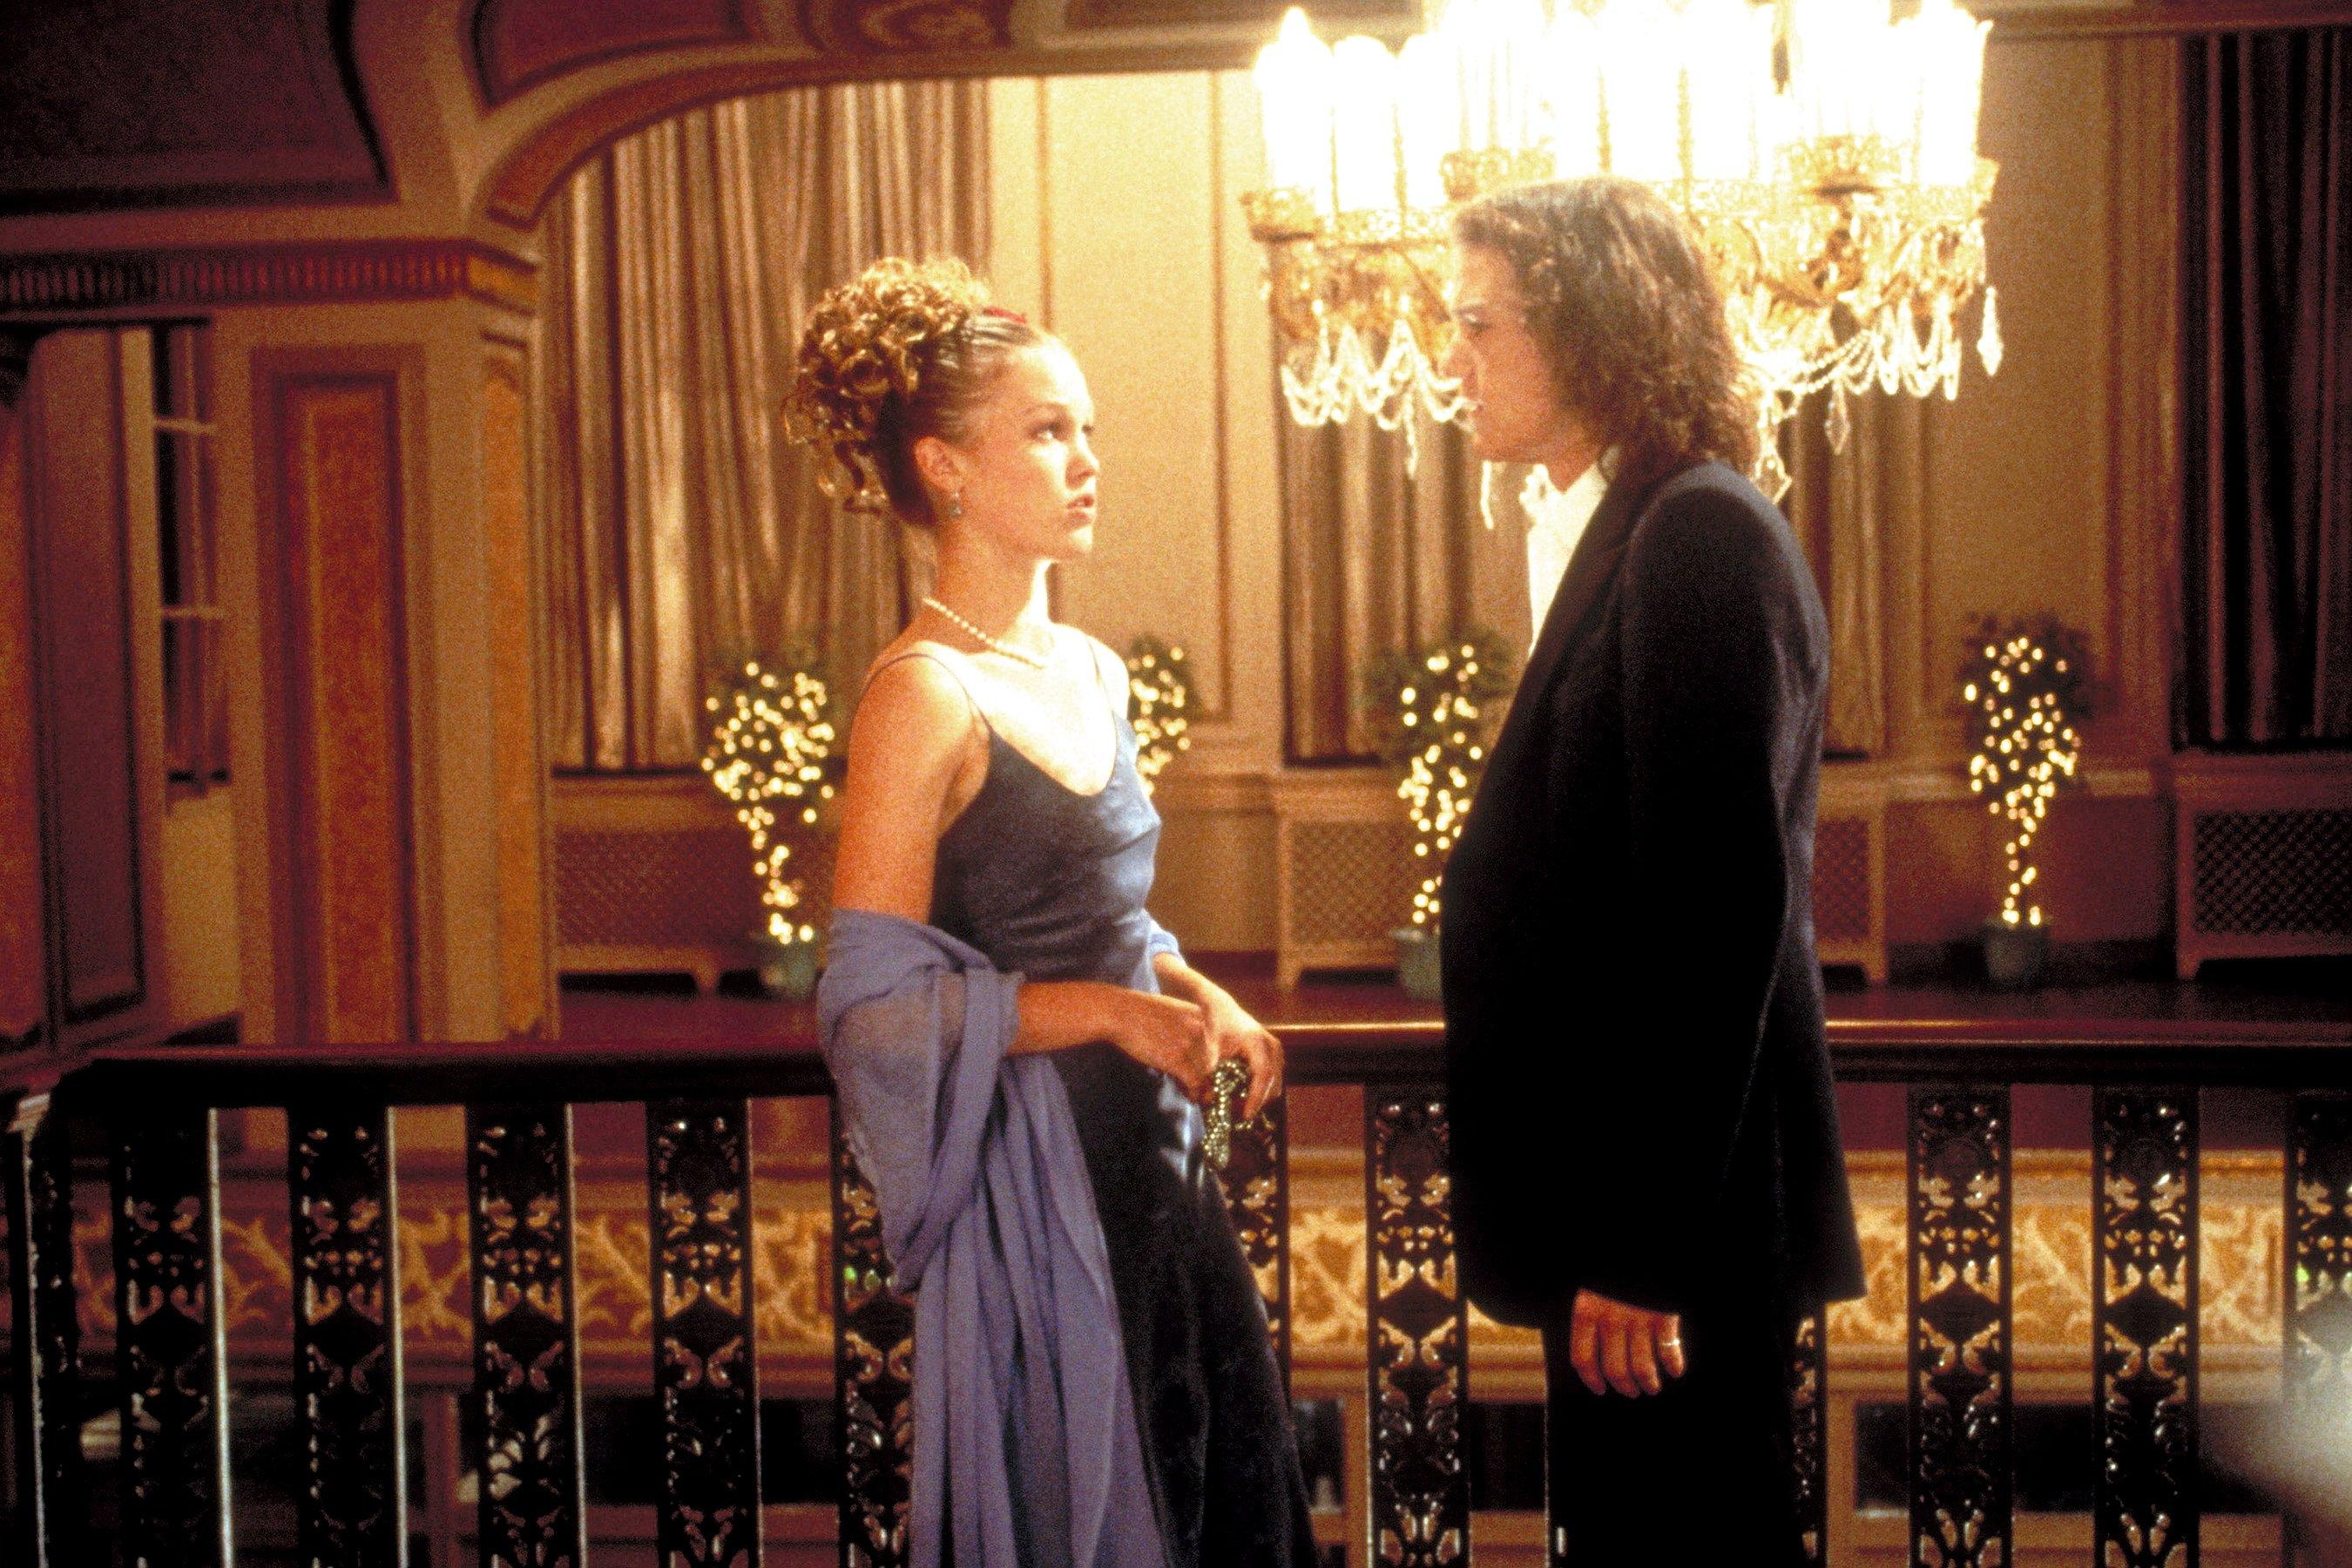 Genre Grandeur 10 Things I Hate About You 1999: 10 Things That Are So '90s In 10 Things I Hate About You